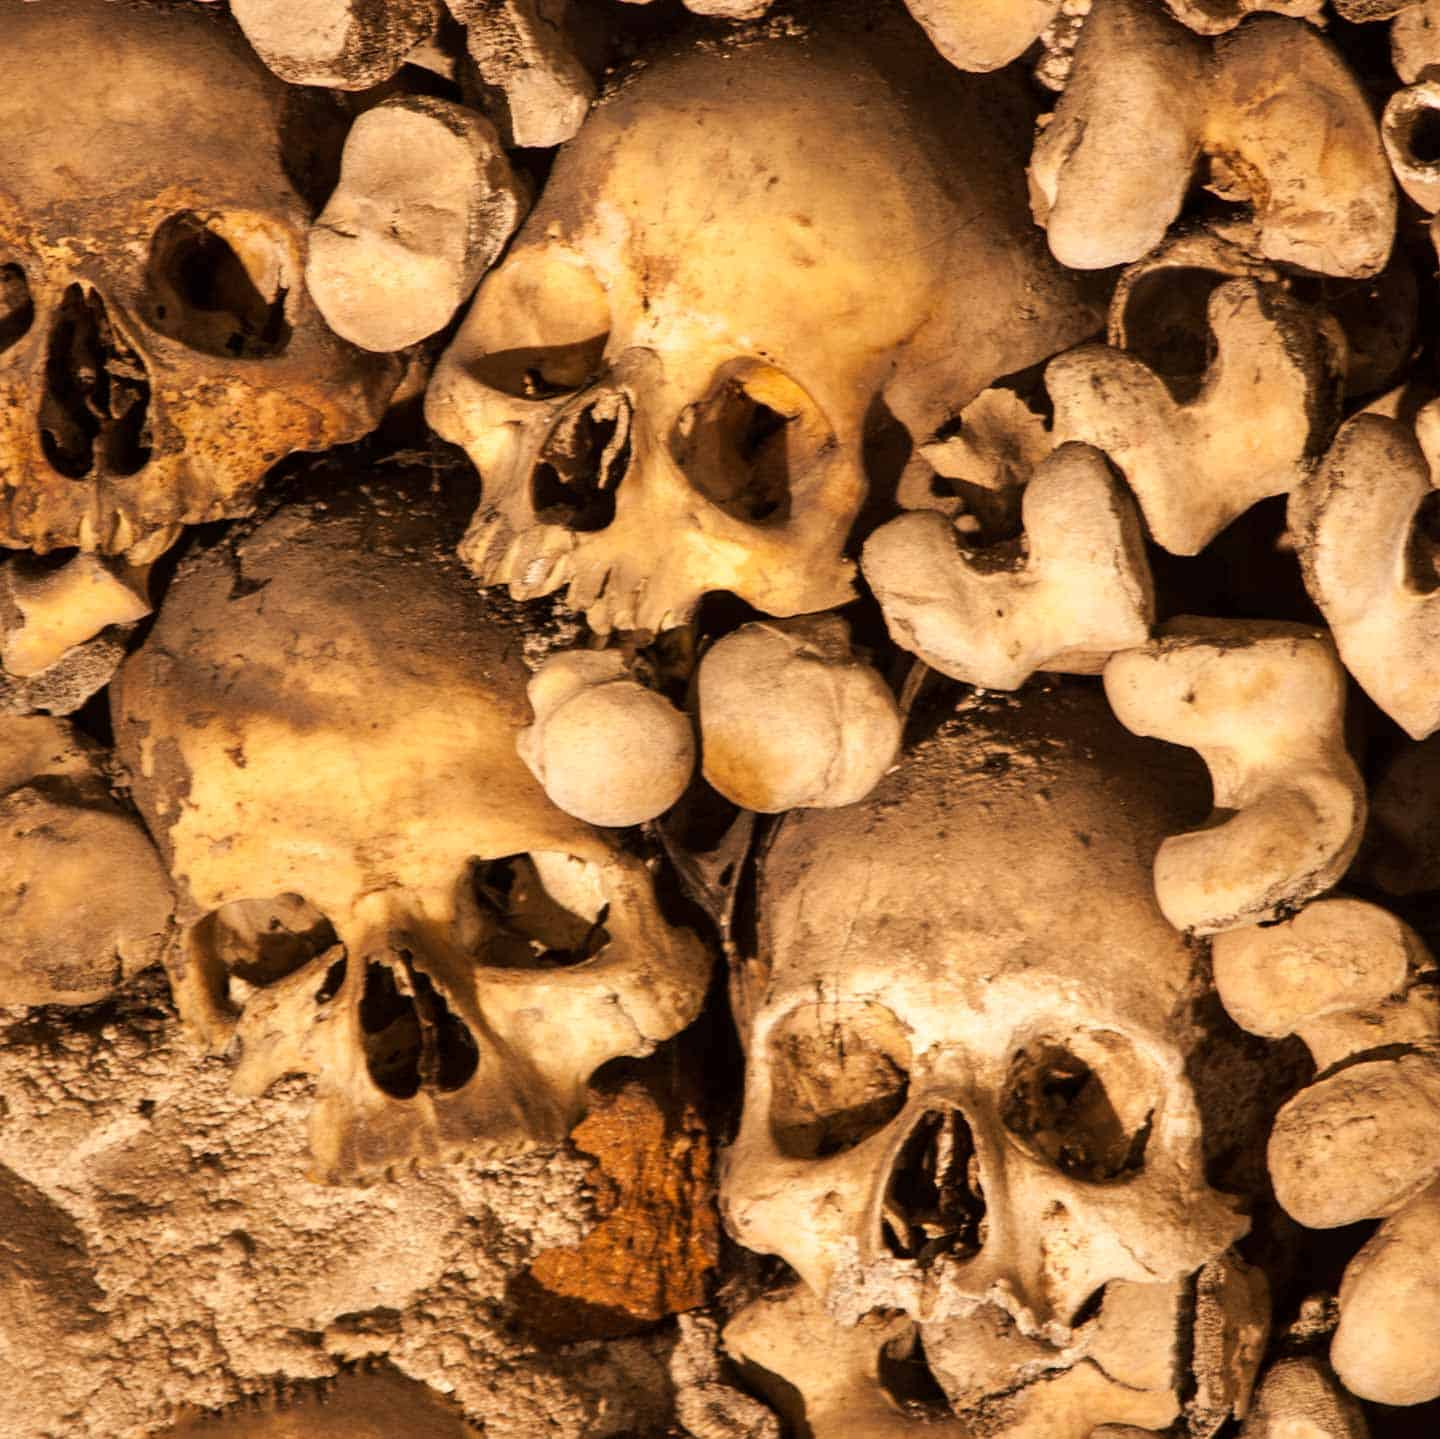 Image of skulls and bones in the chapel